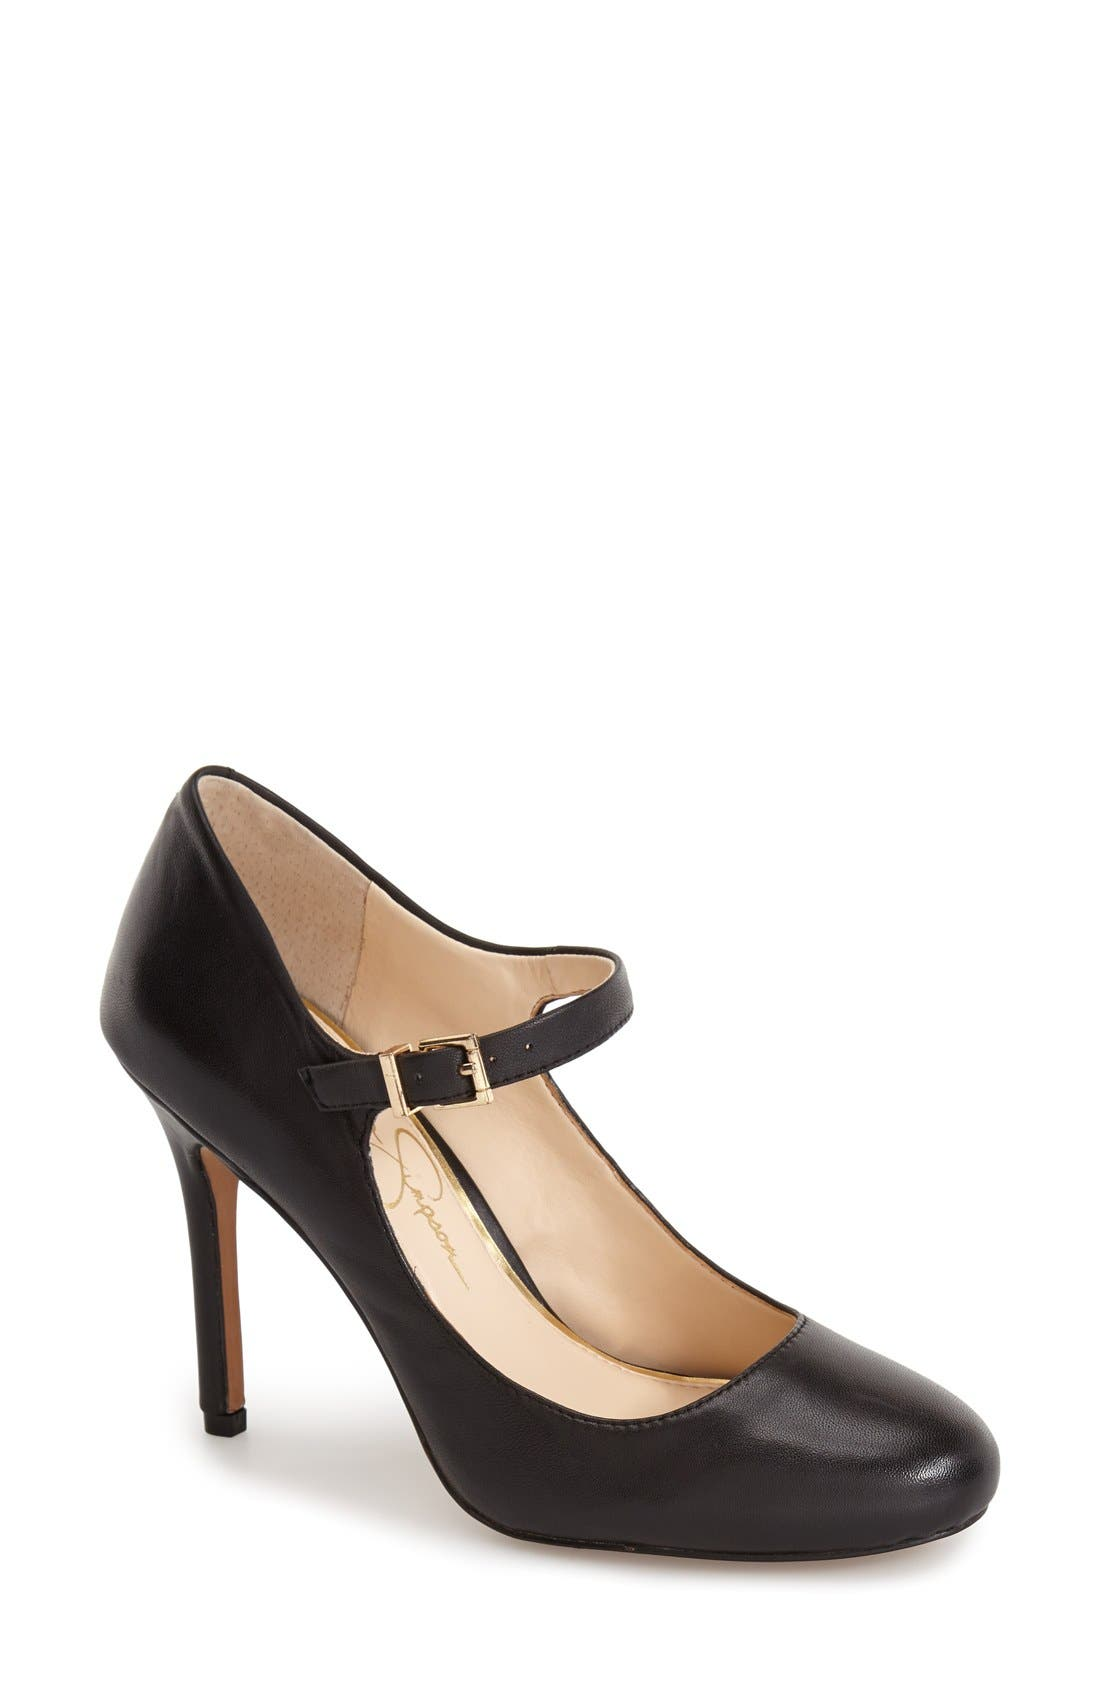 'Raelyn' Mary Jane Pump,                             Main thumbnail 1, color,                             001